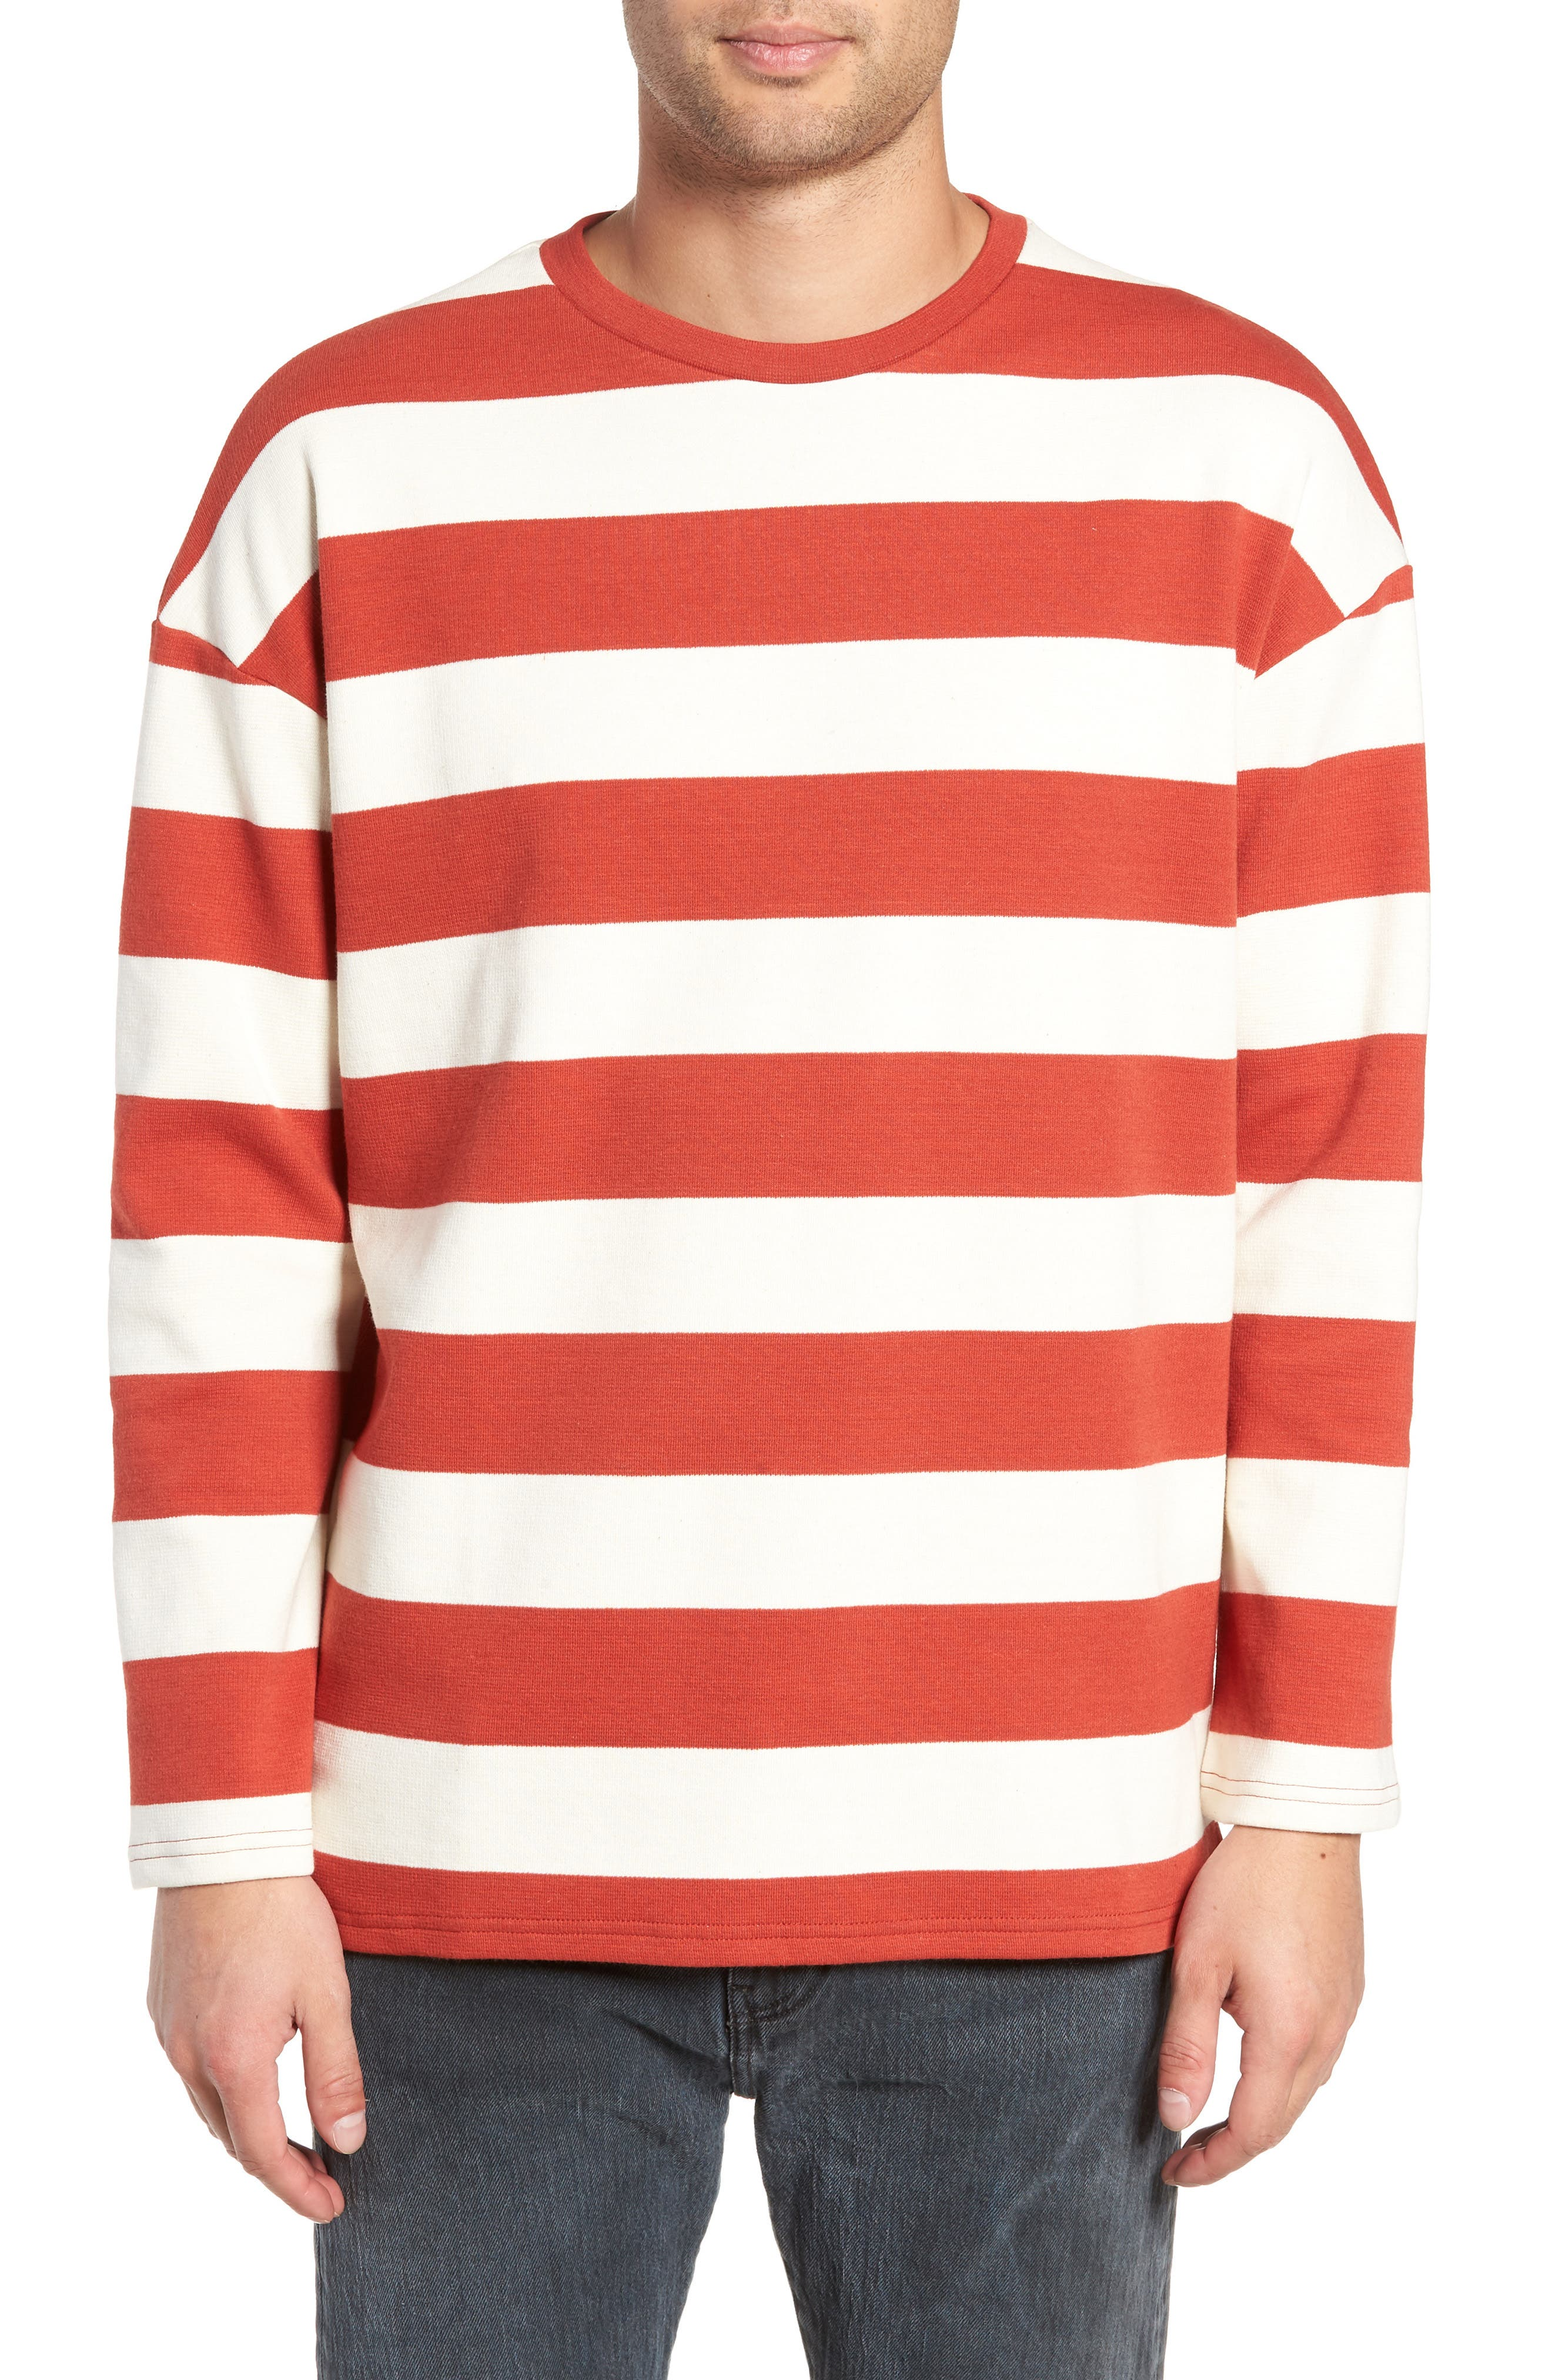 Stripe Crewneck Sweatshirt,                             Main thumbnail 1, color,                             ORANGE